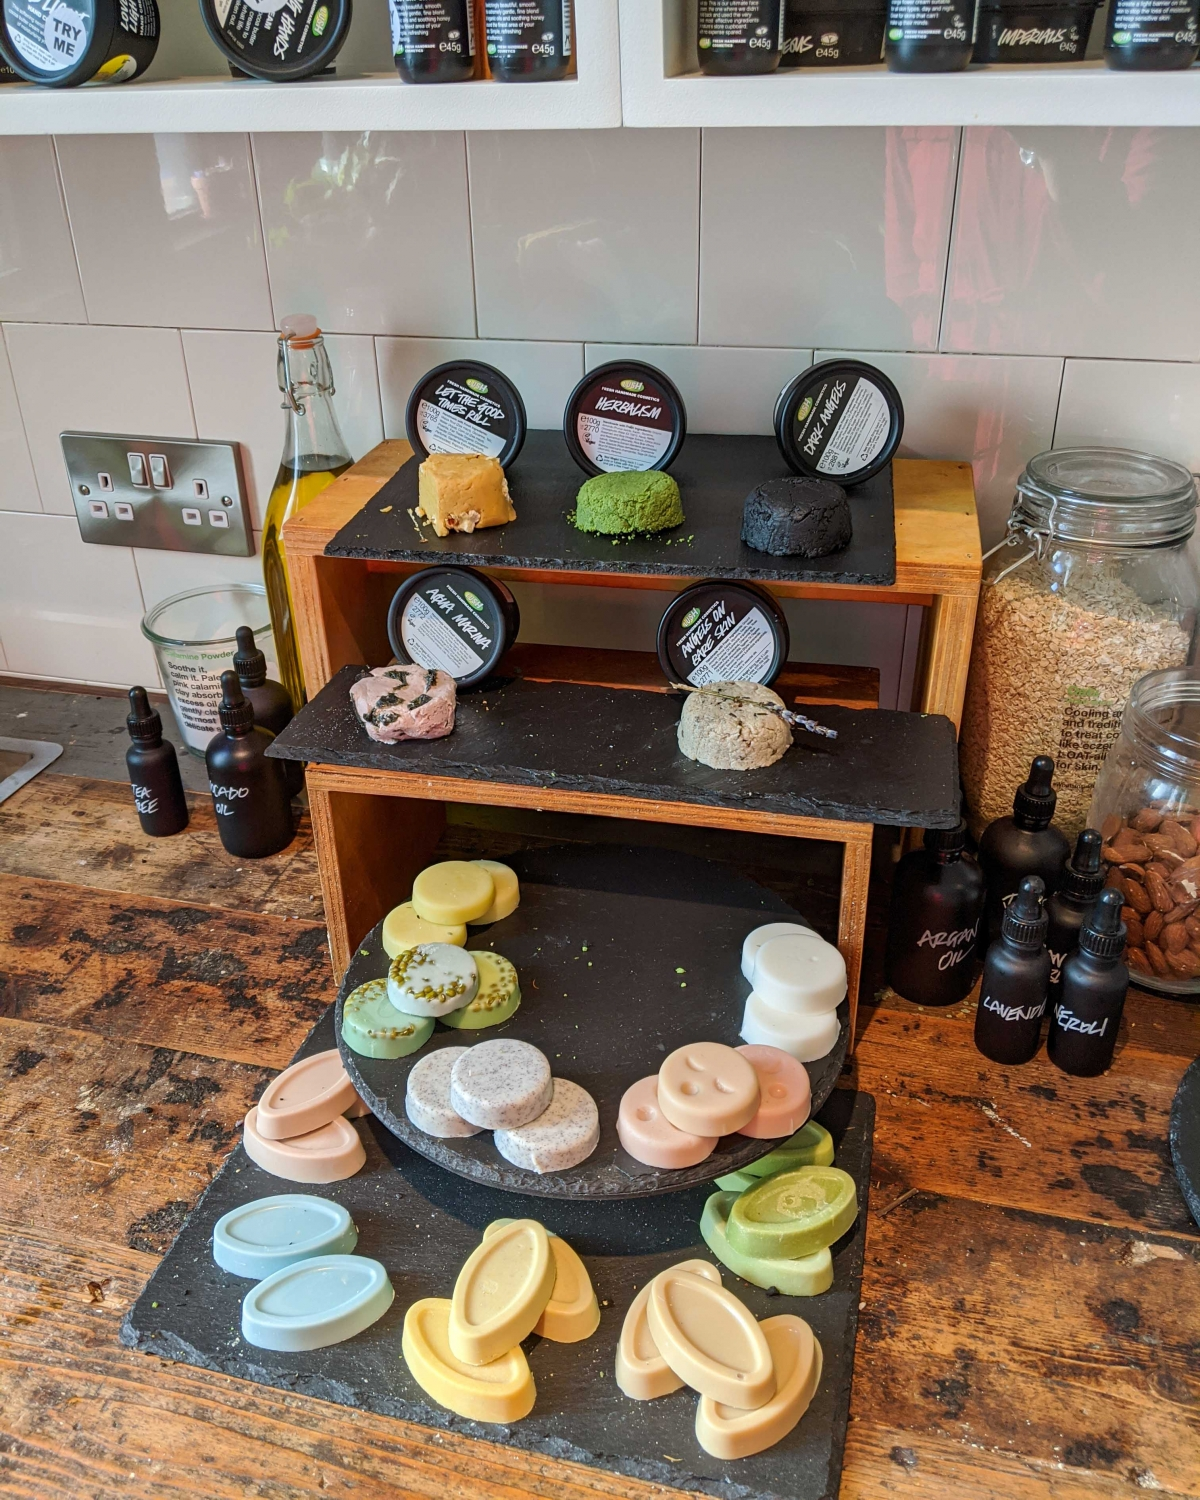 Display of packaging free products at Lush Spa